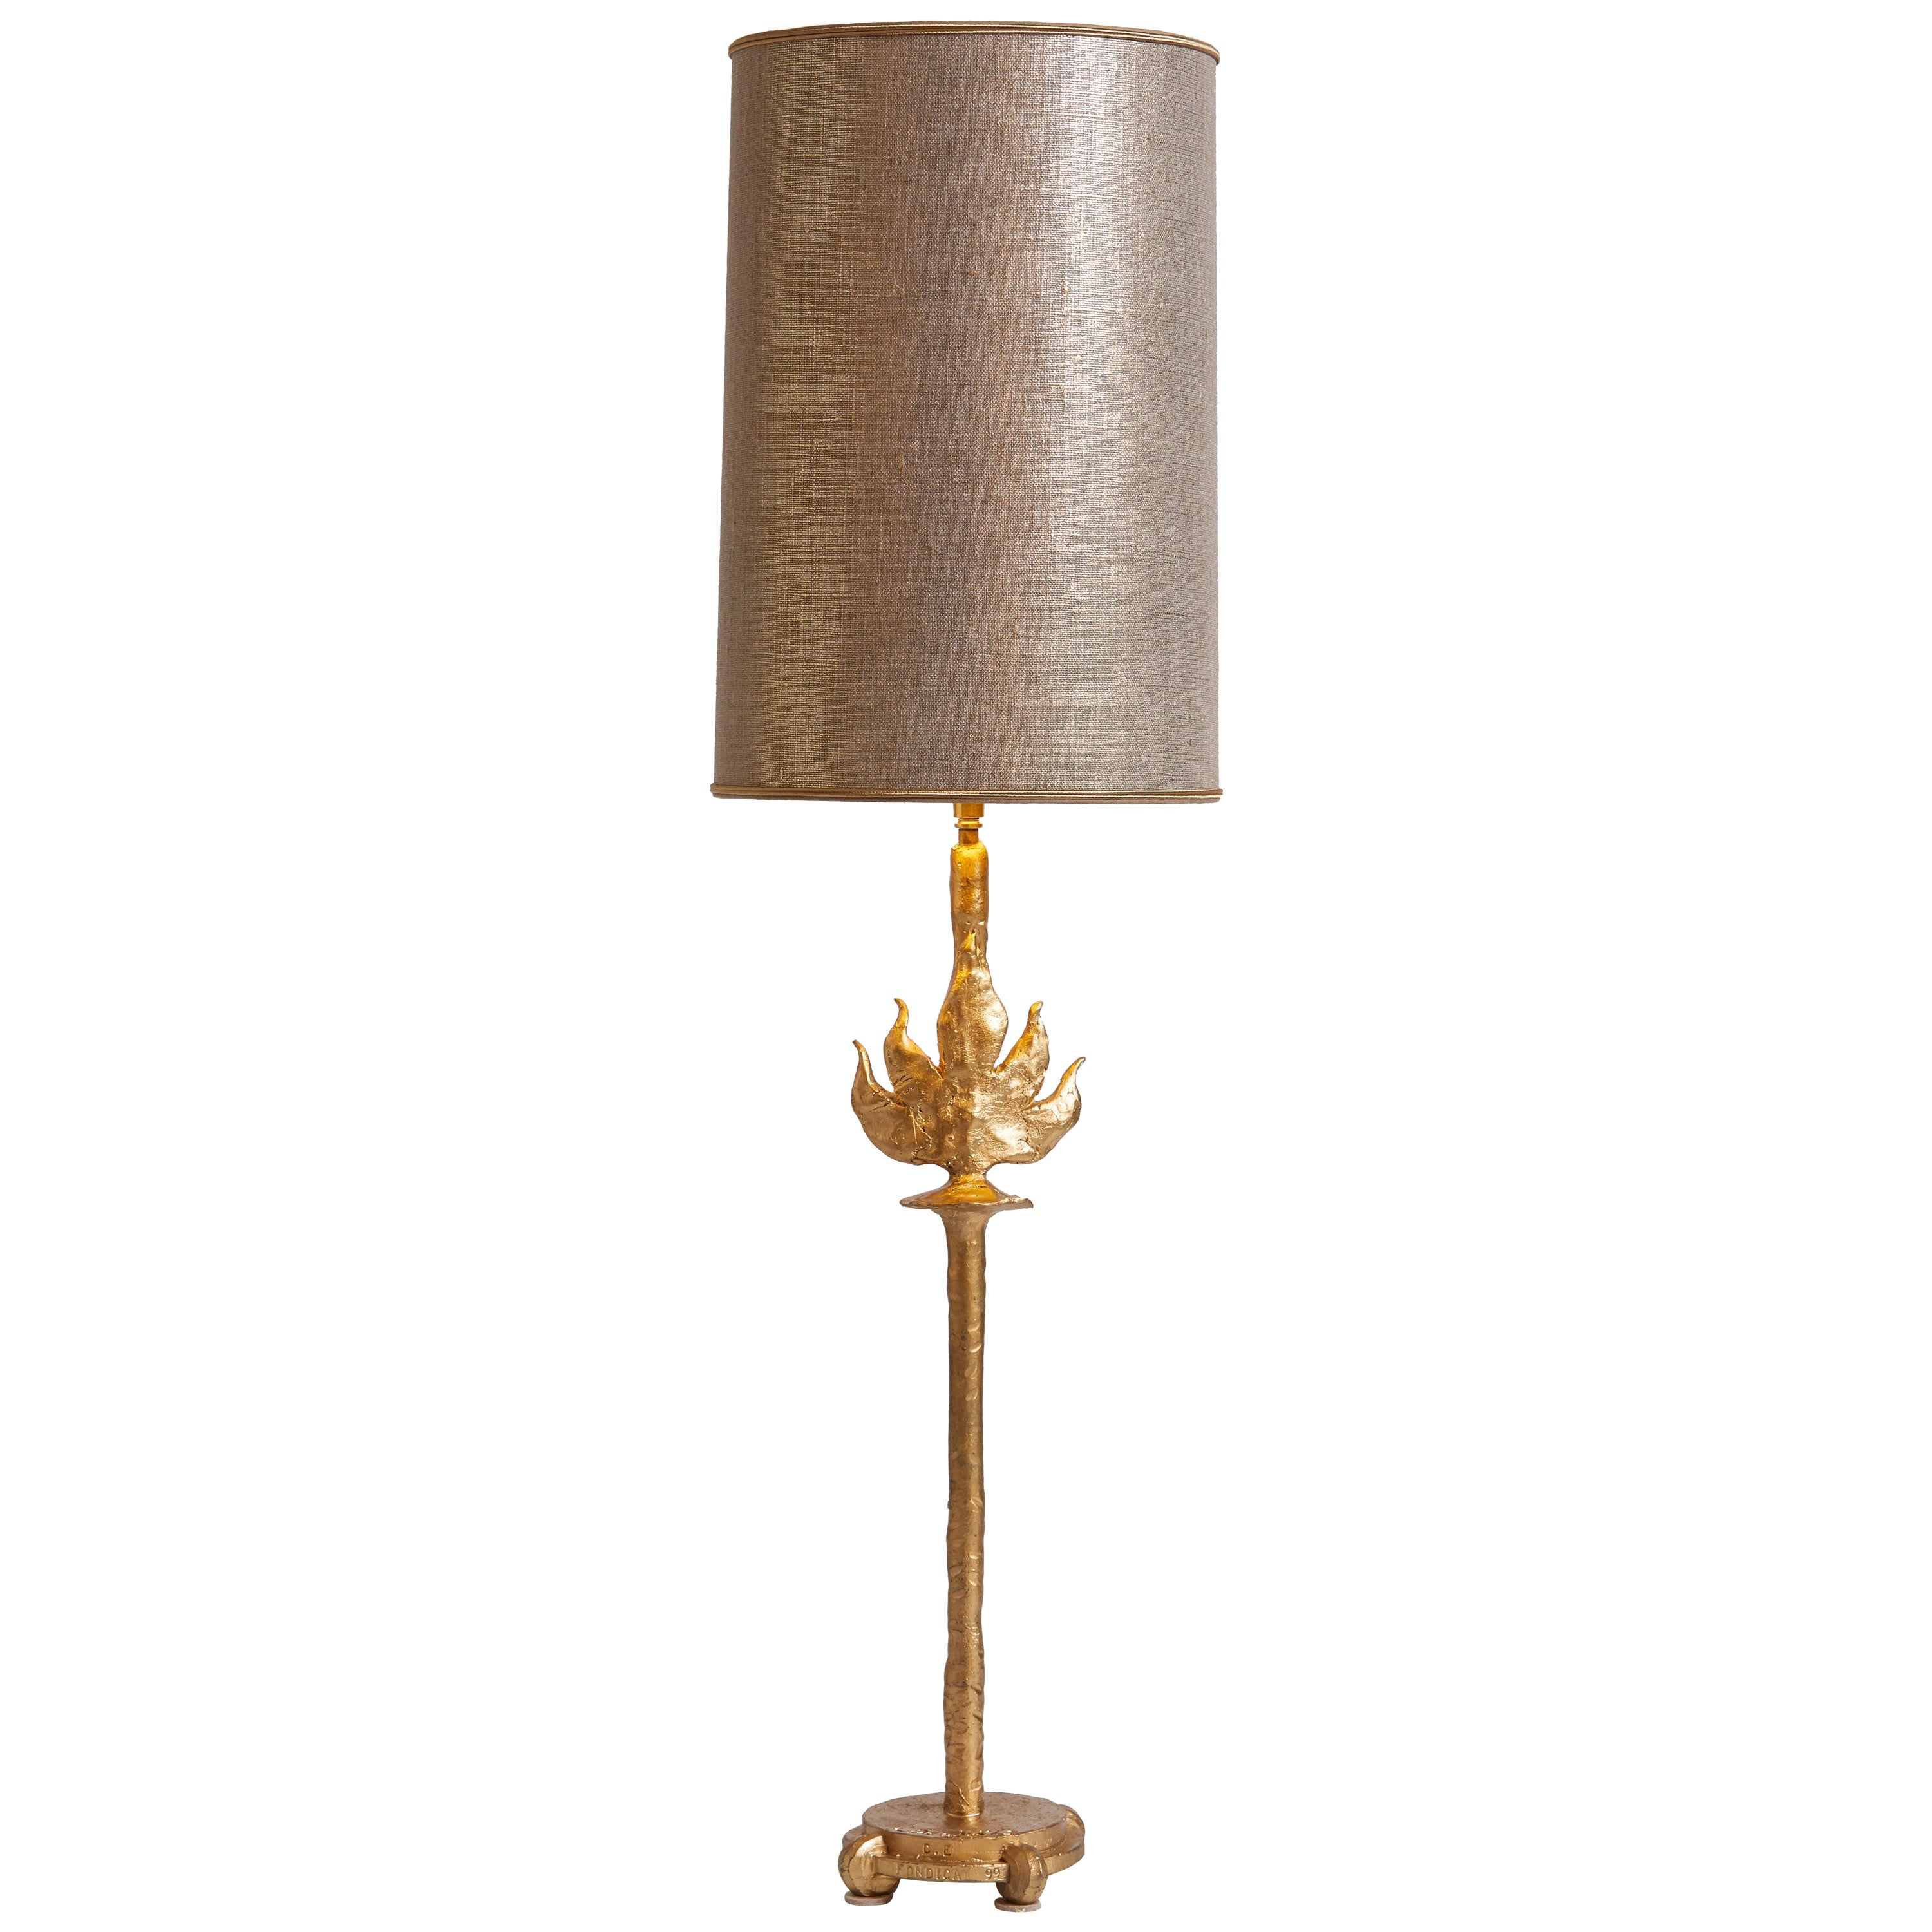 1980s French Fondica Gilt Metal Table Lamp